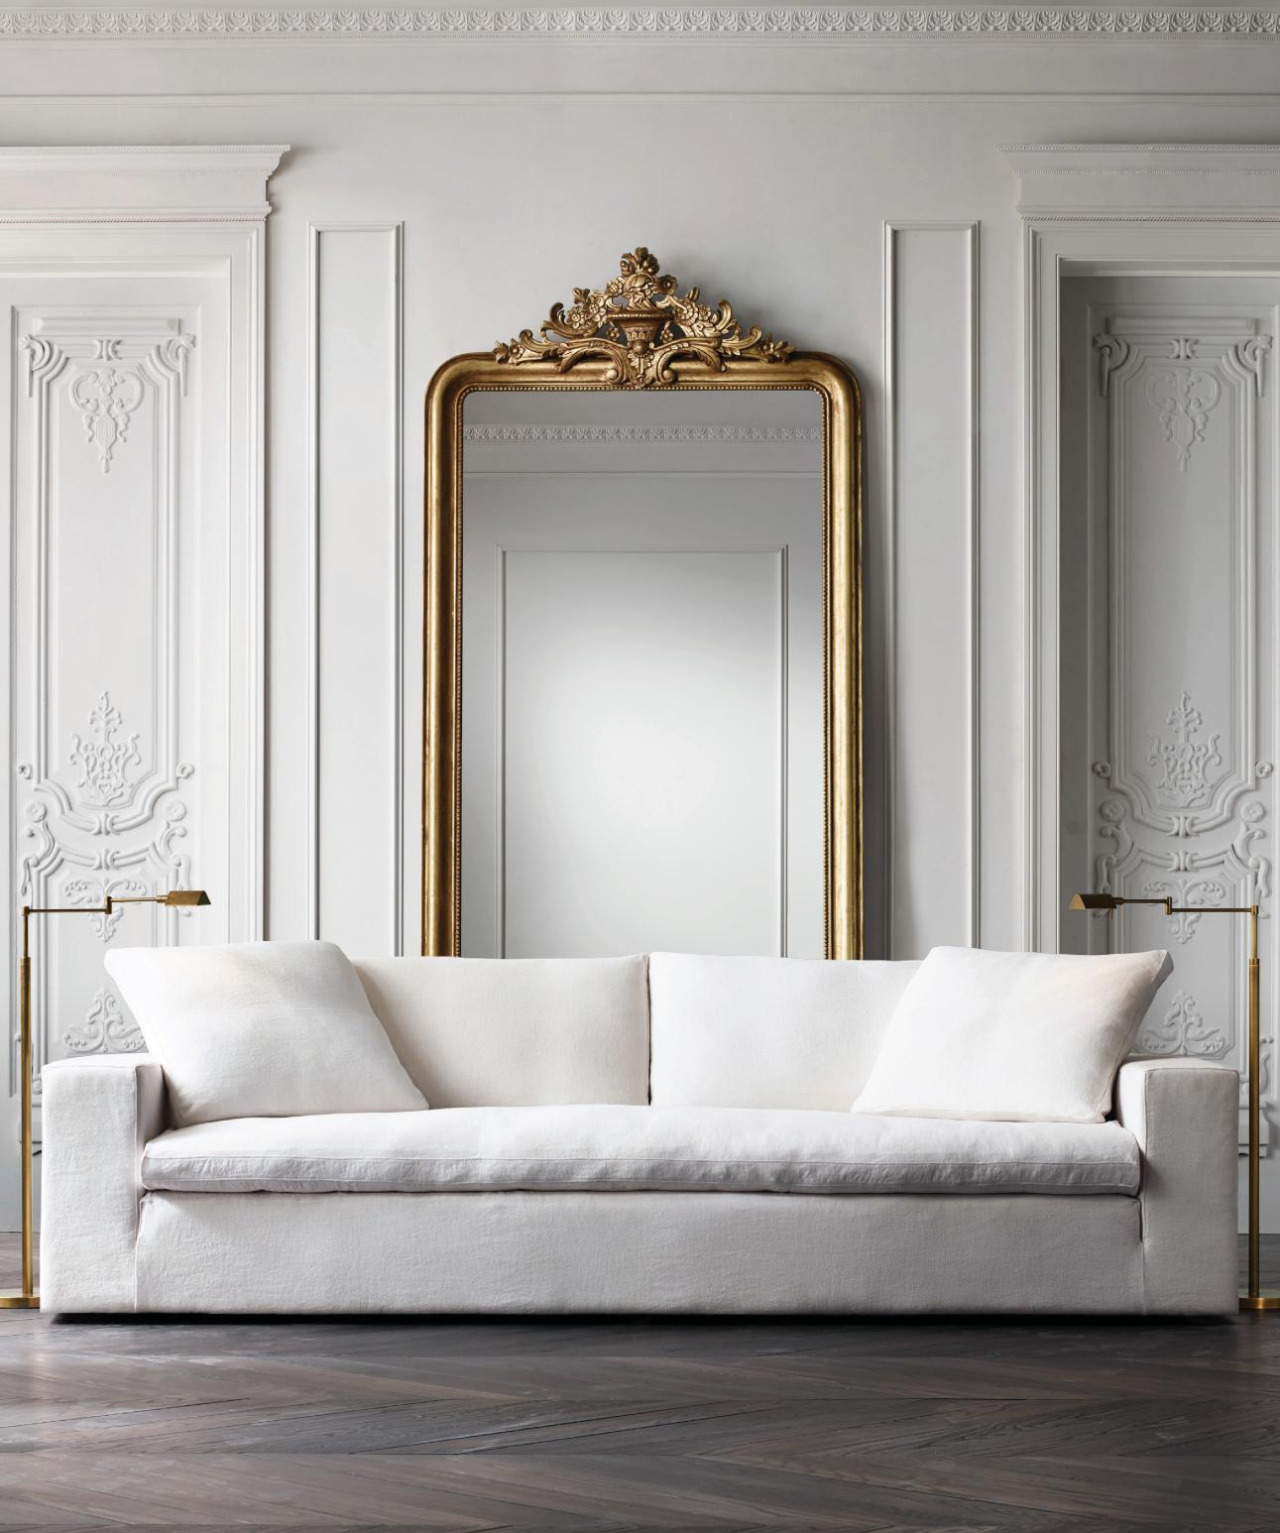 mirrors for living room decor stunning wall mirror designs for your living room decor 21024